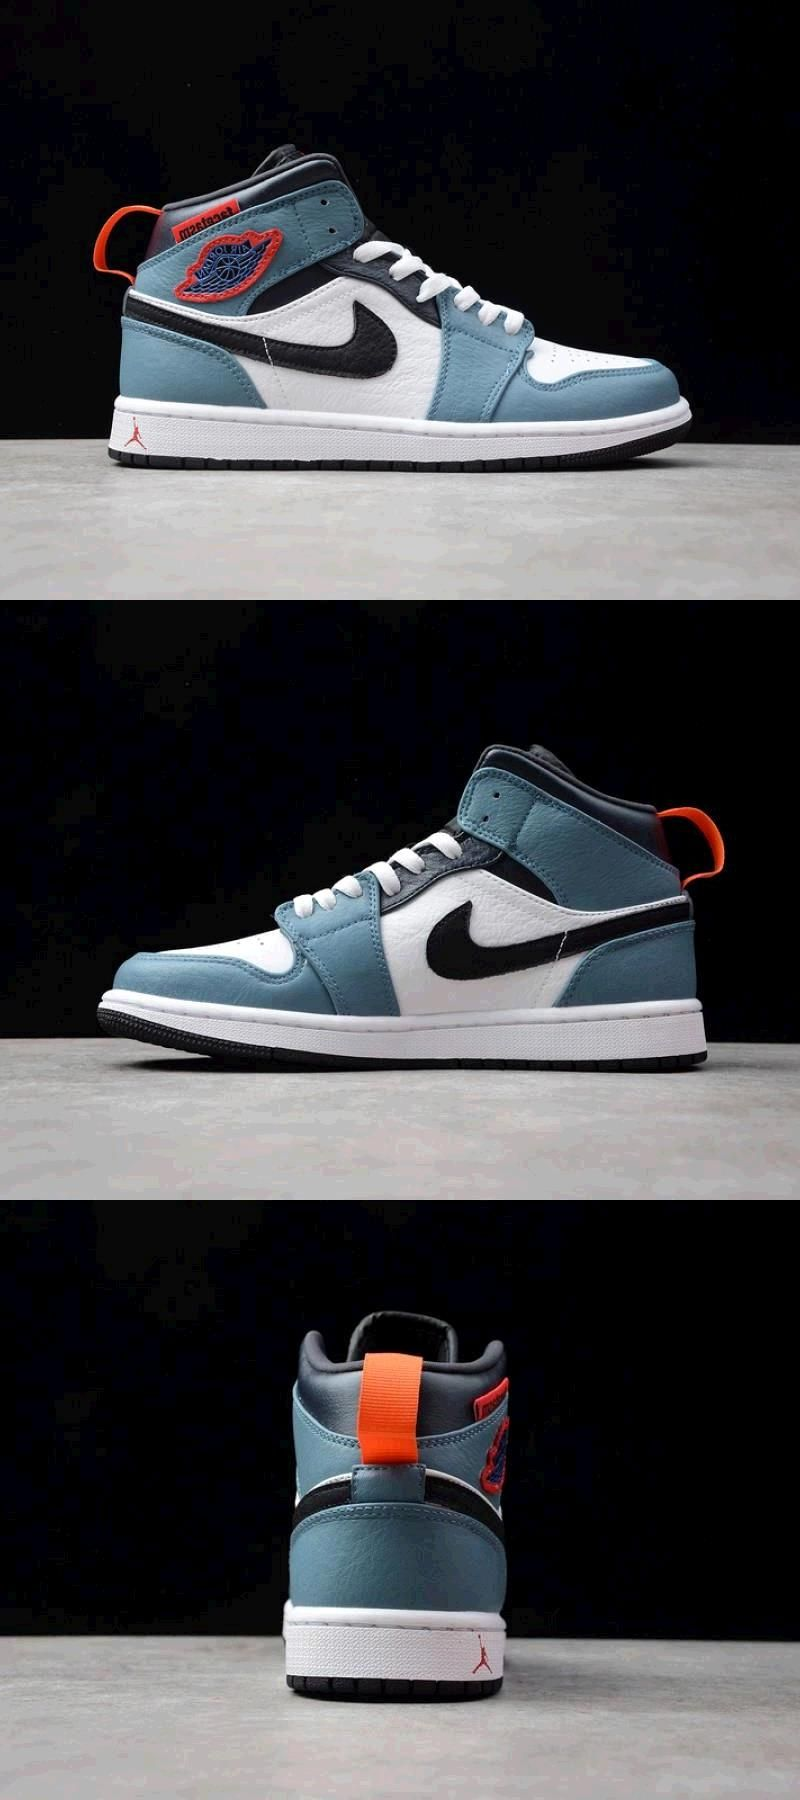 Air Jordan 1 Mid Fearless Facetasm CU2802100 in 2020